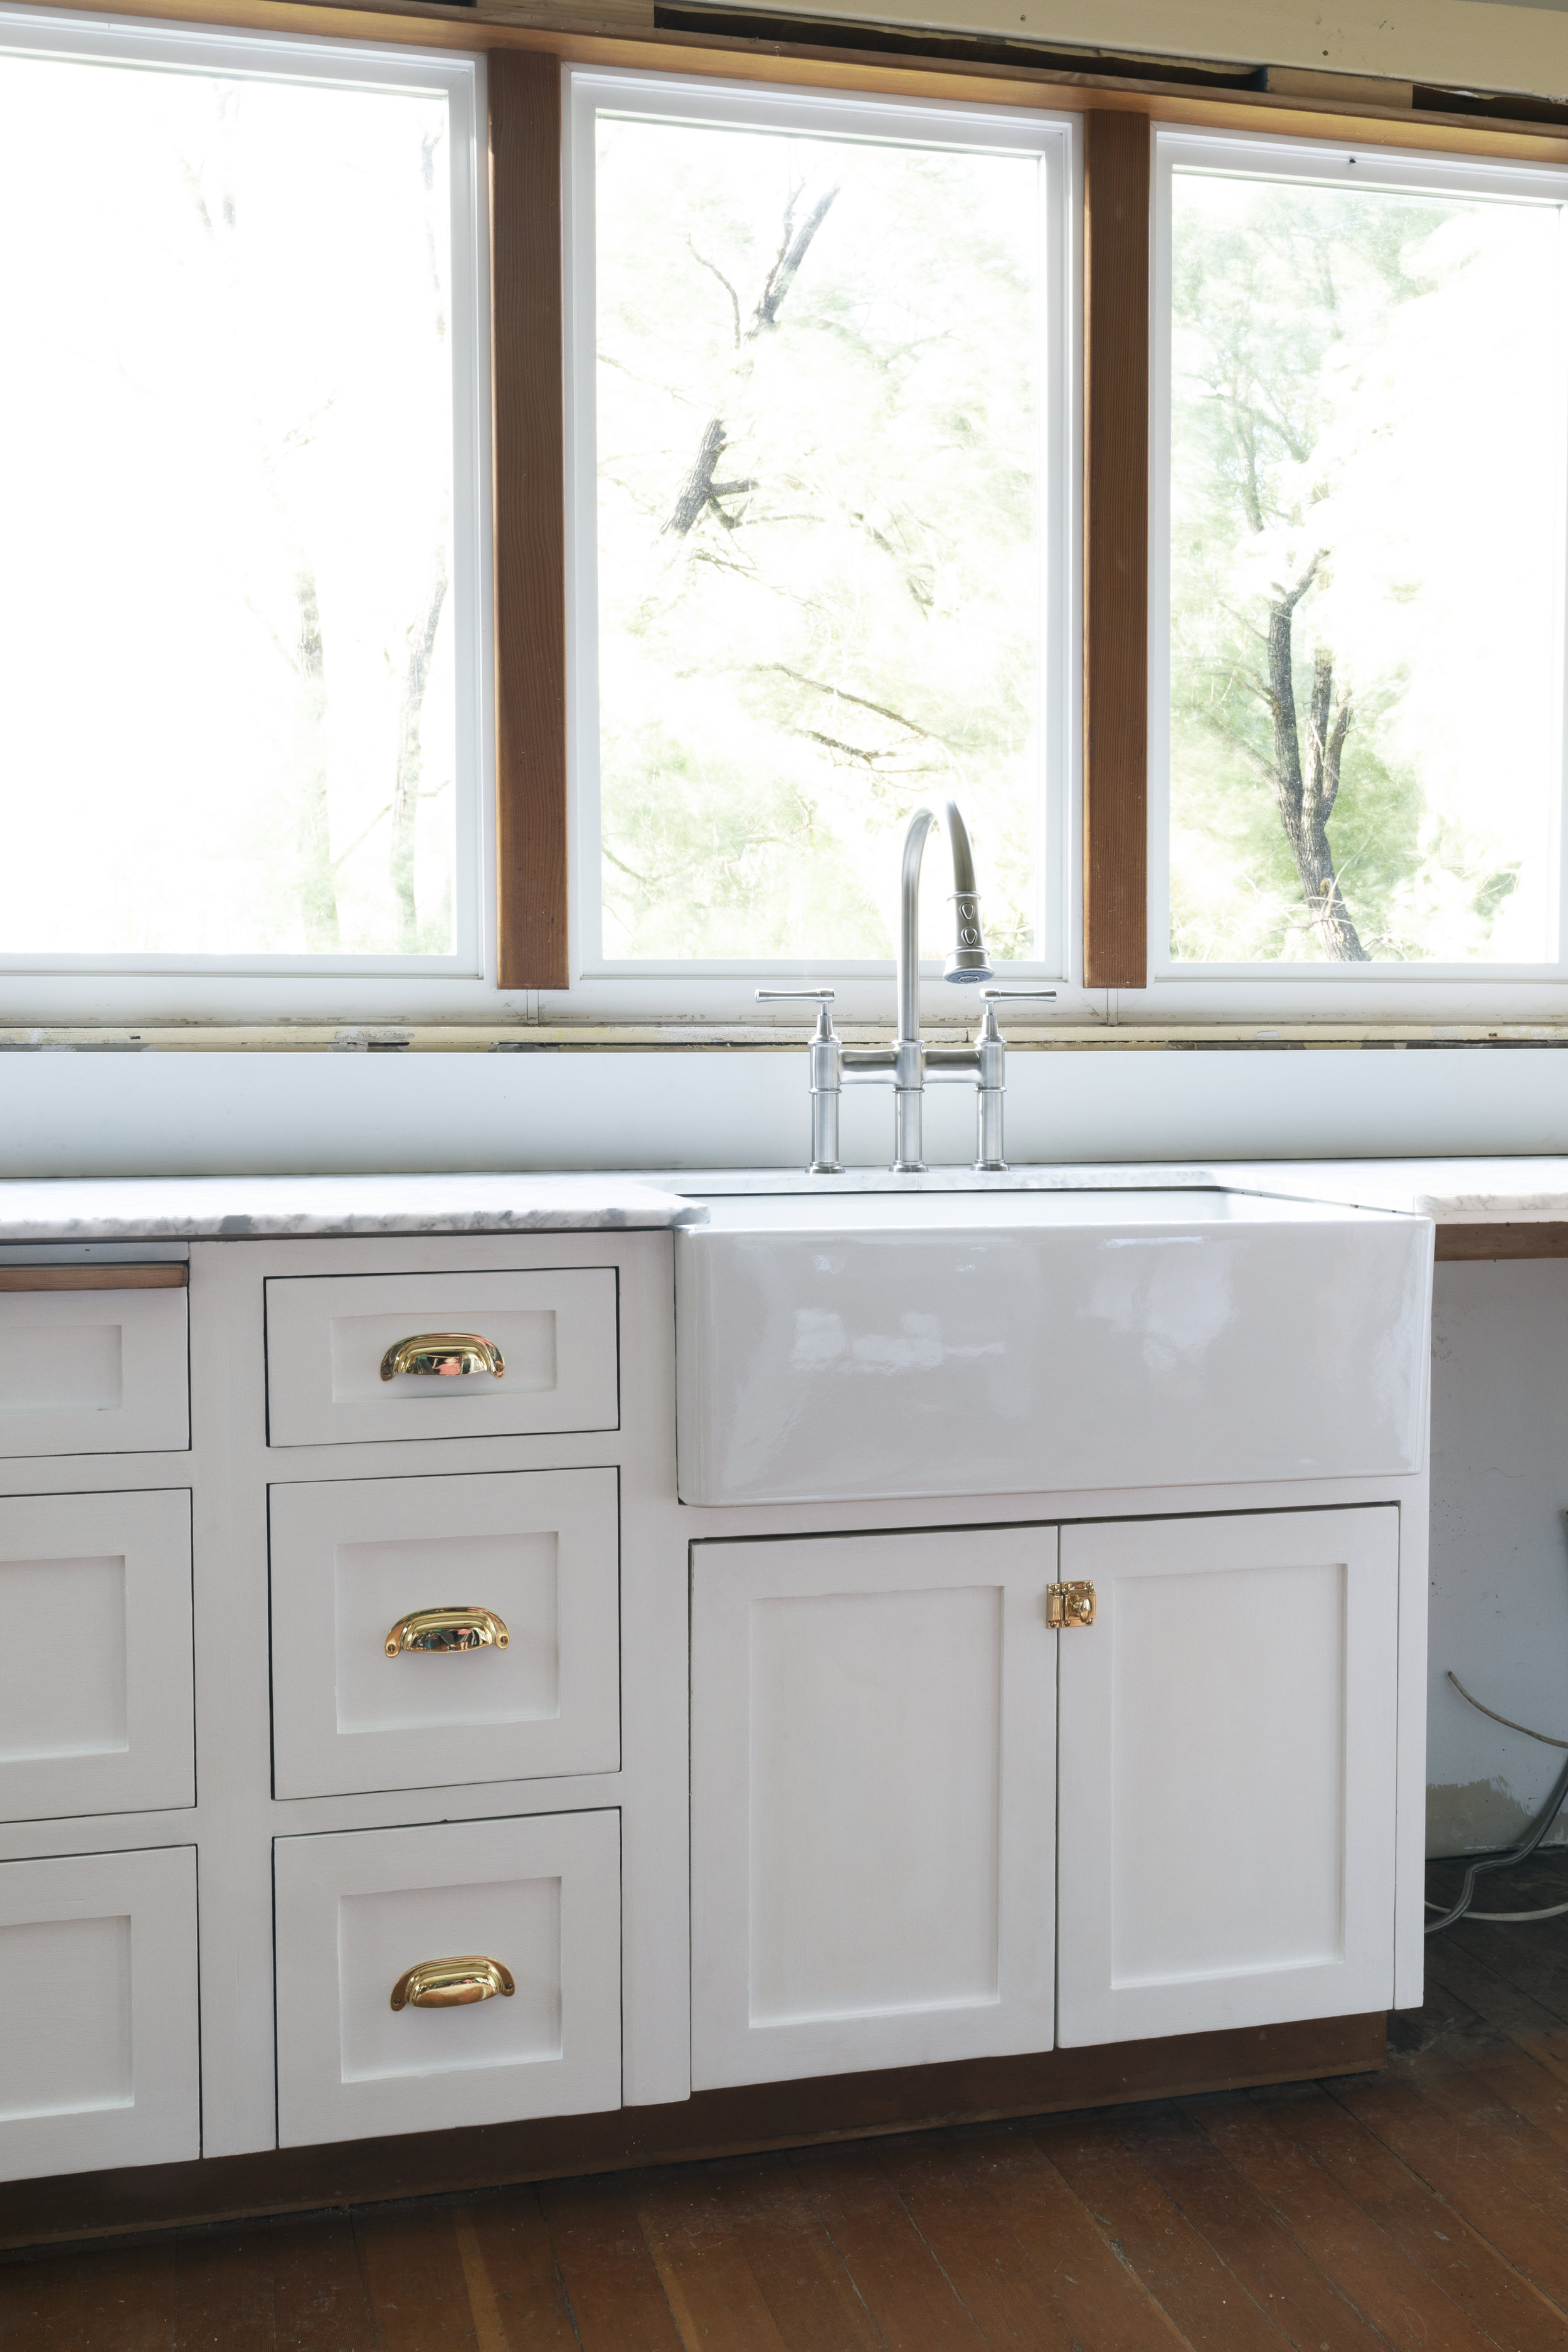 The Grit and Polish - Farmhouse Kitchen Update Elkay Sink + Faucet 5 SM.jpg